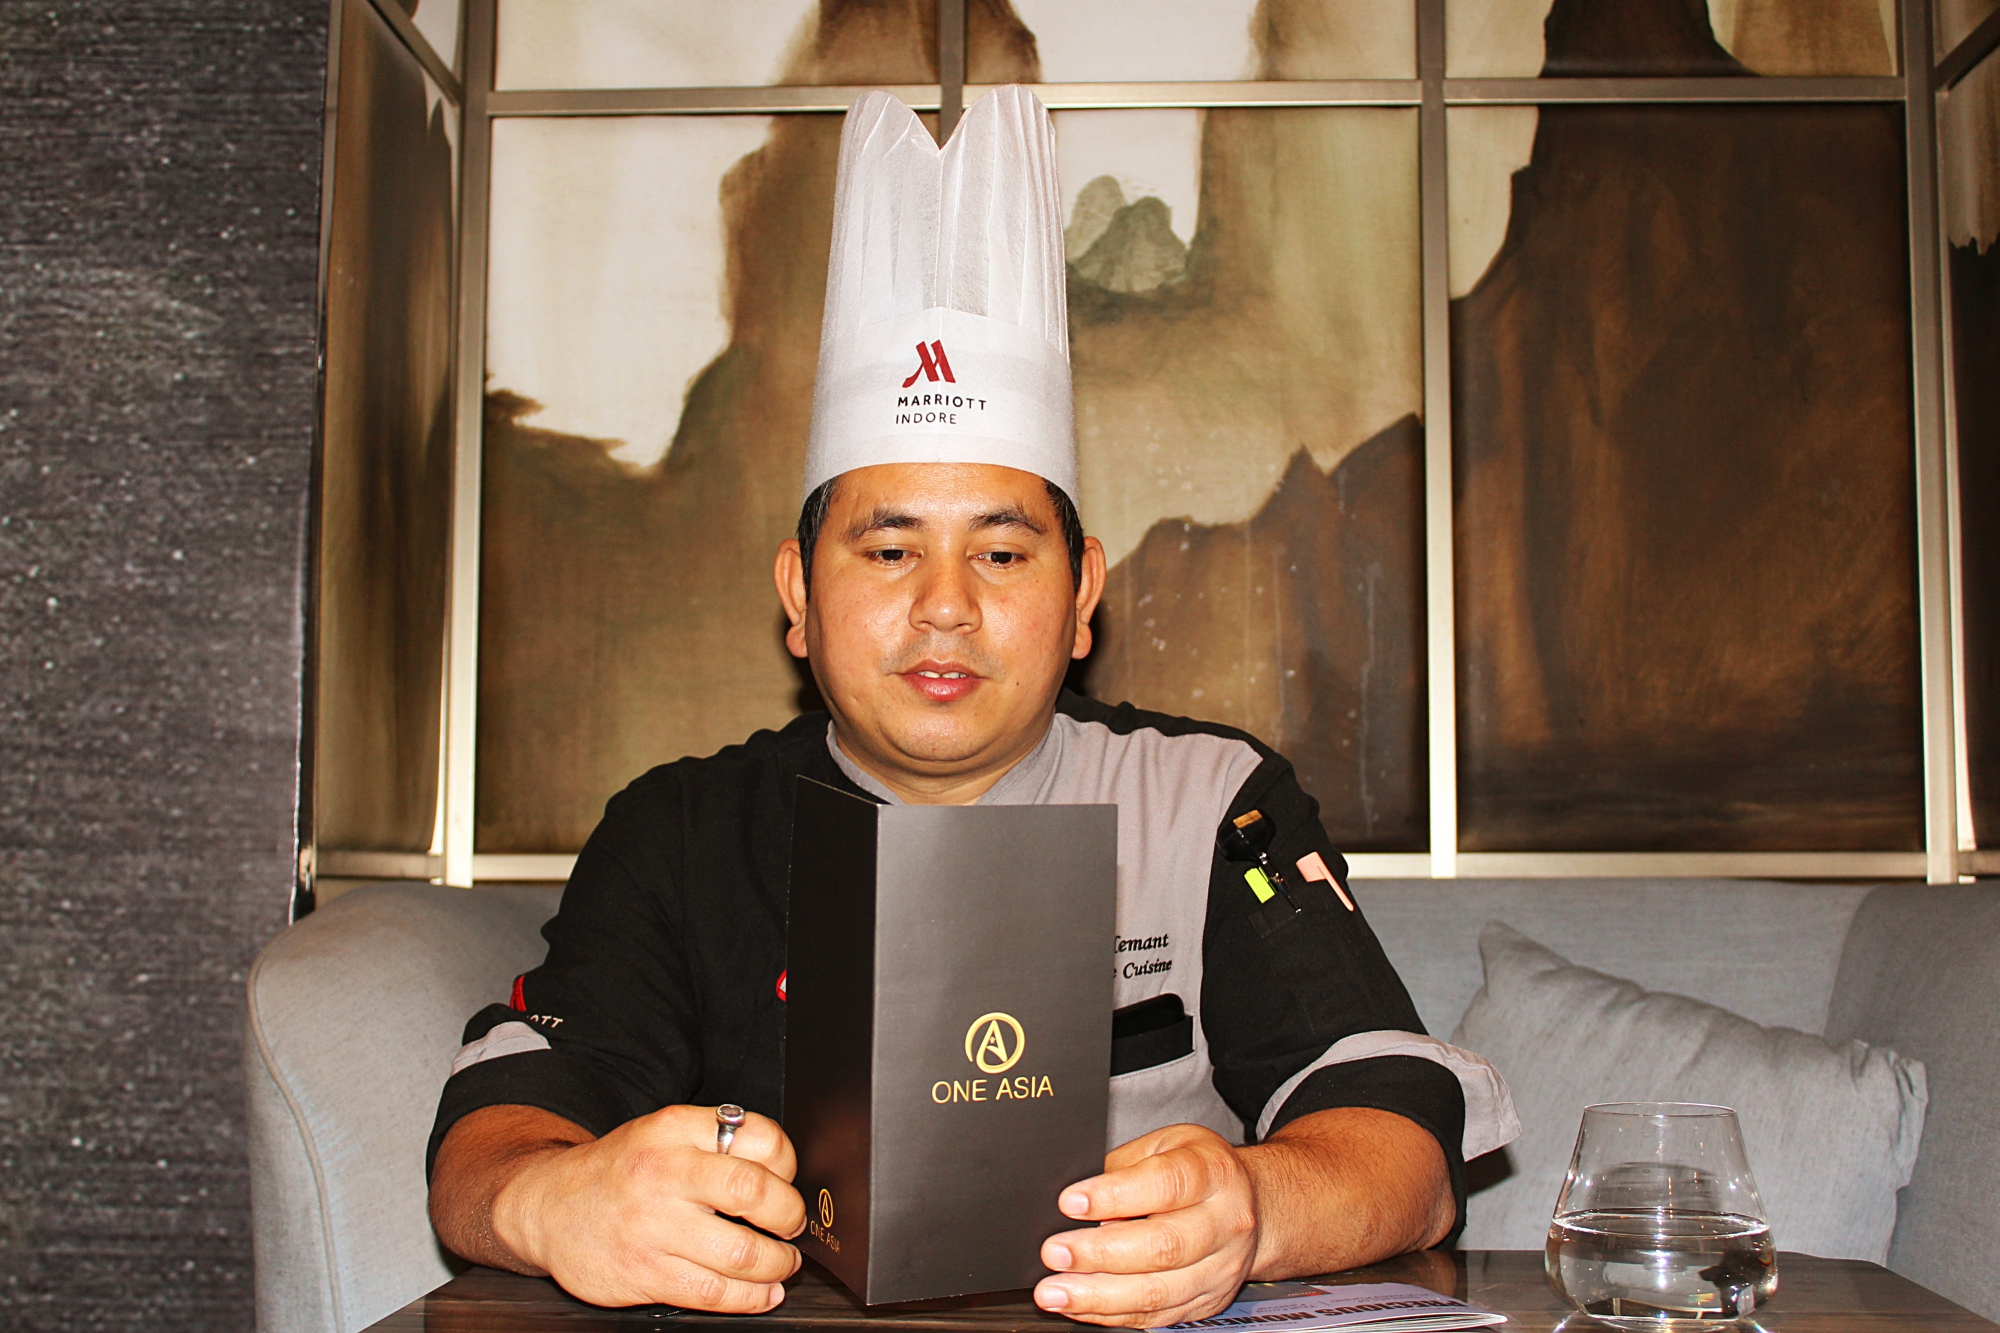 Chef Hemant Sharki